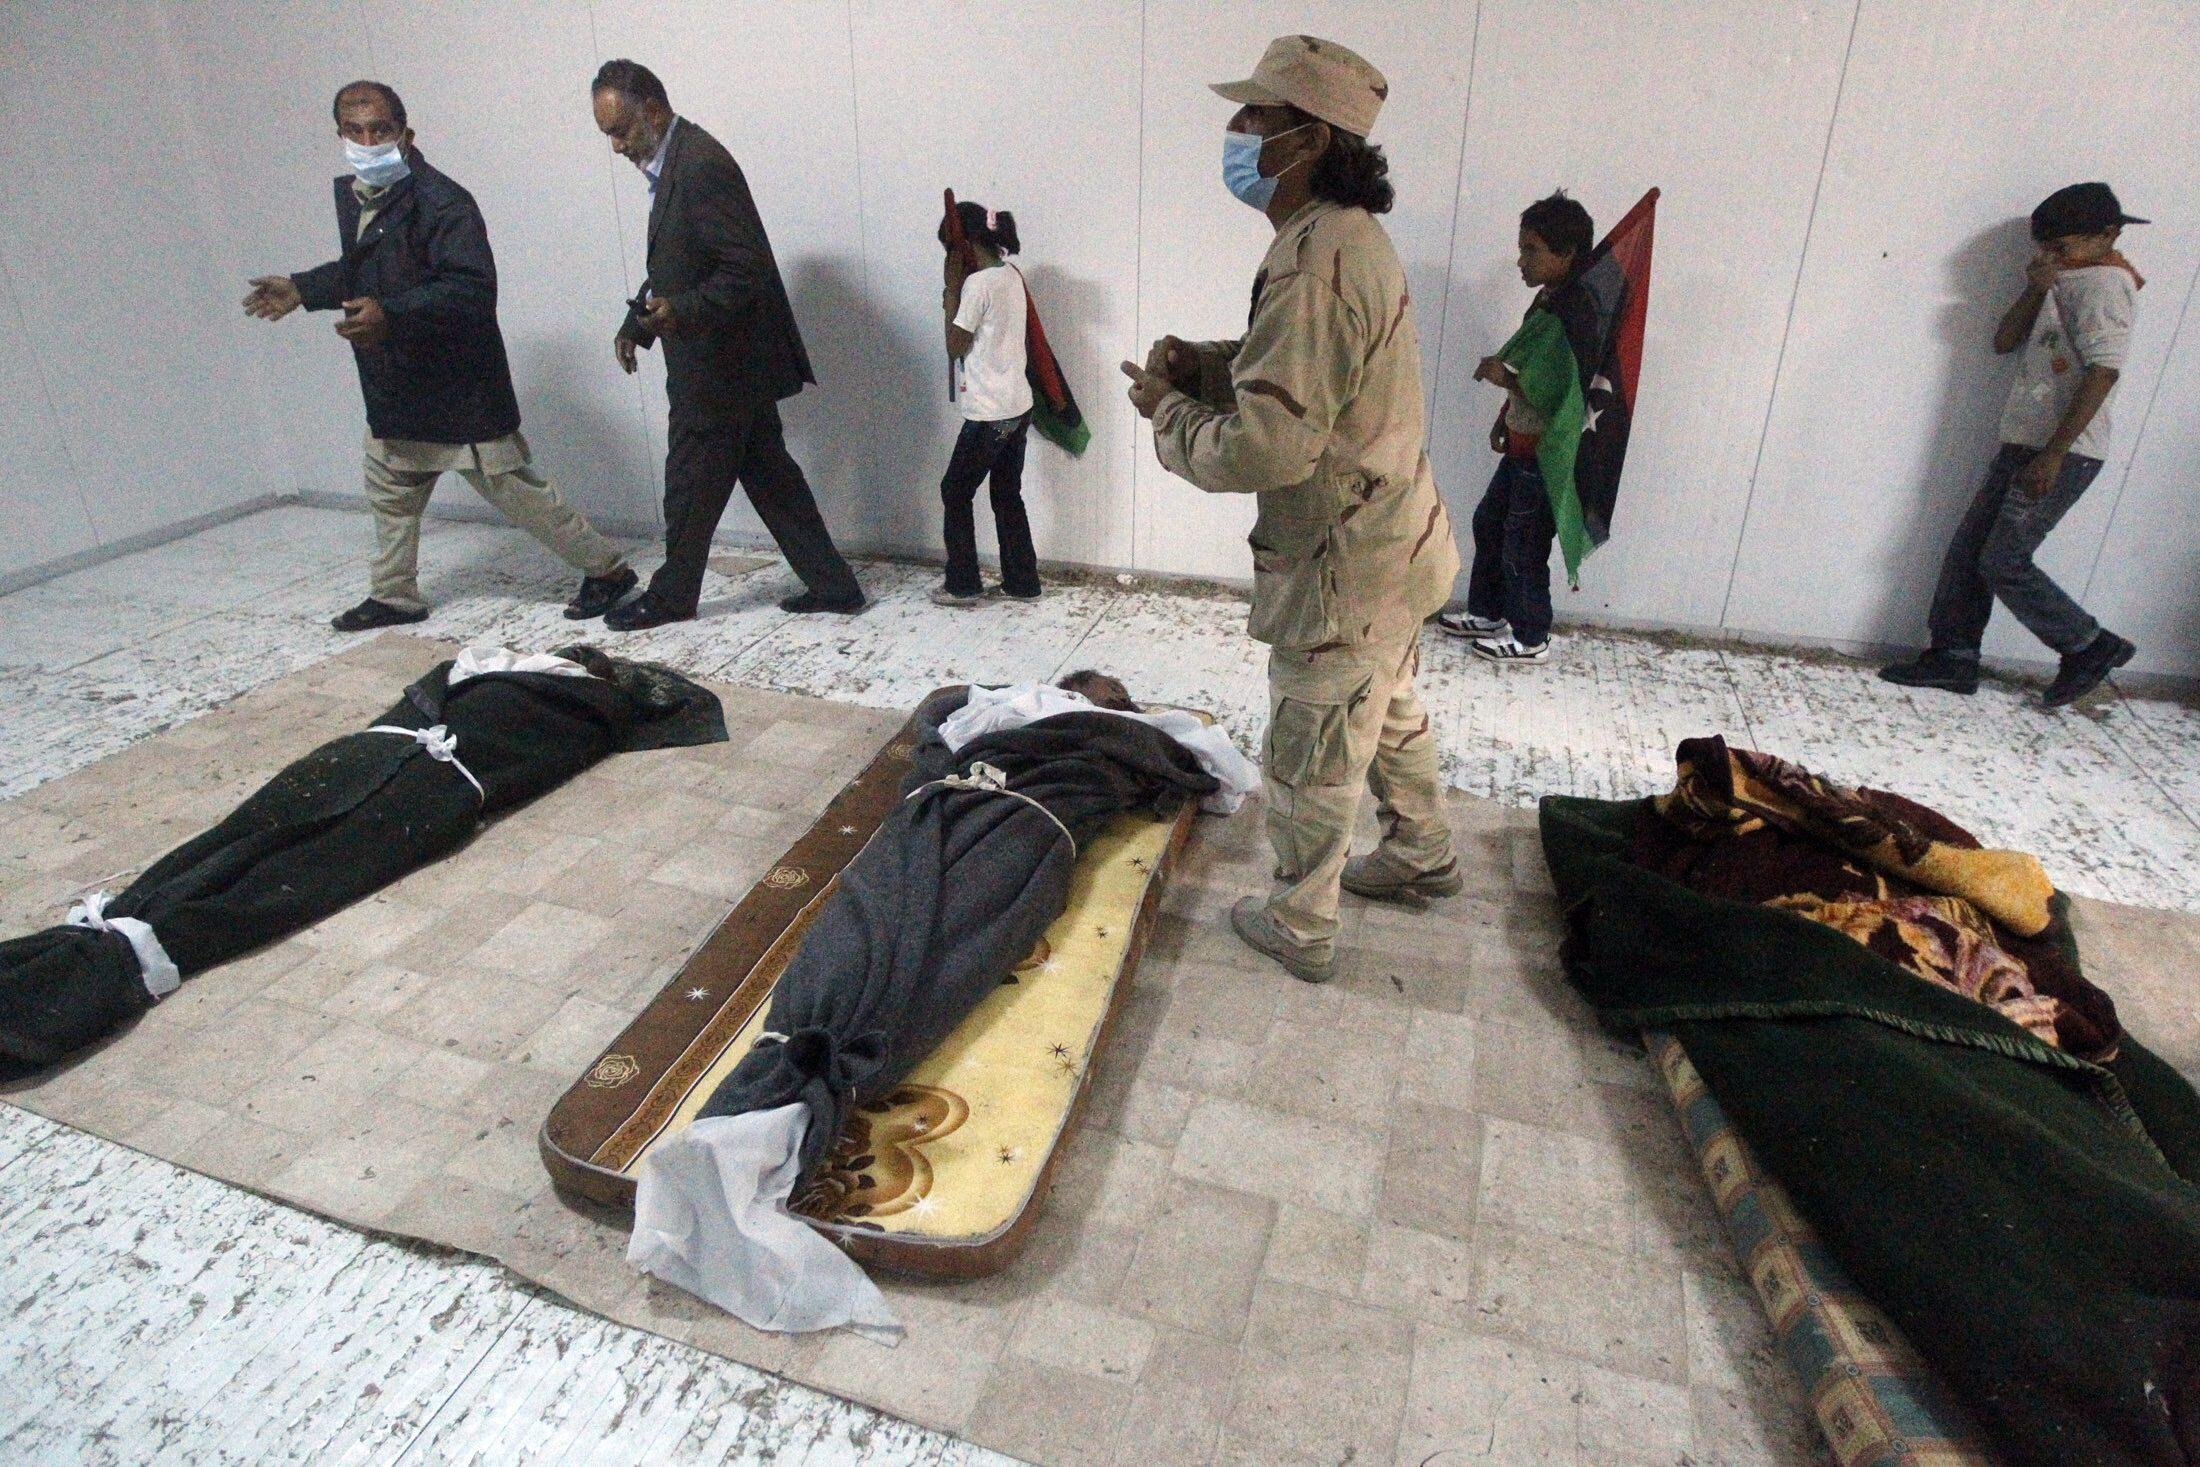 The bodies of Kadhafi and his son Mutassim on show in Misrata